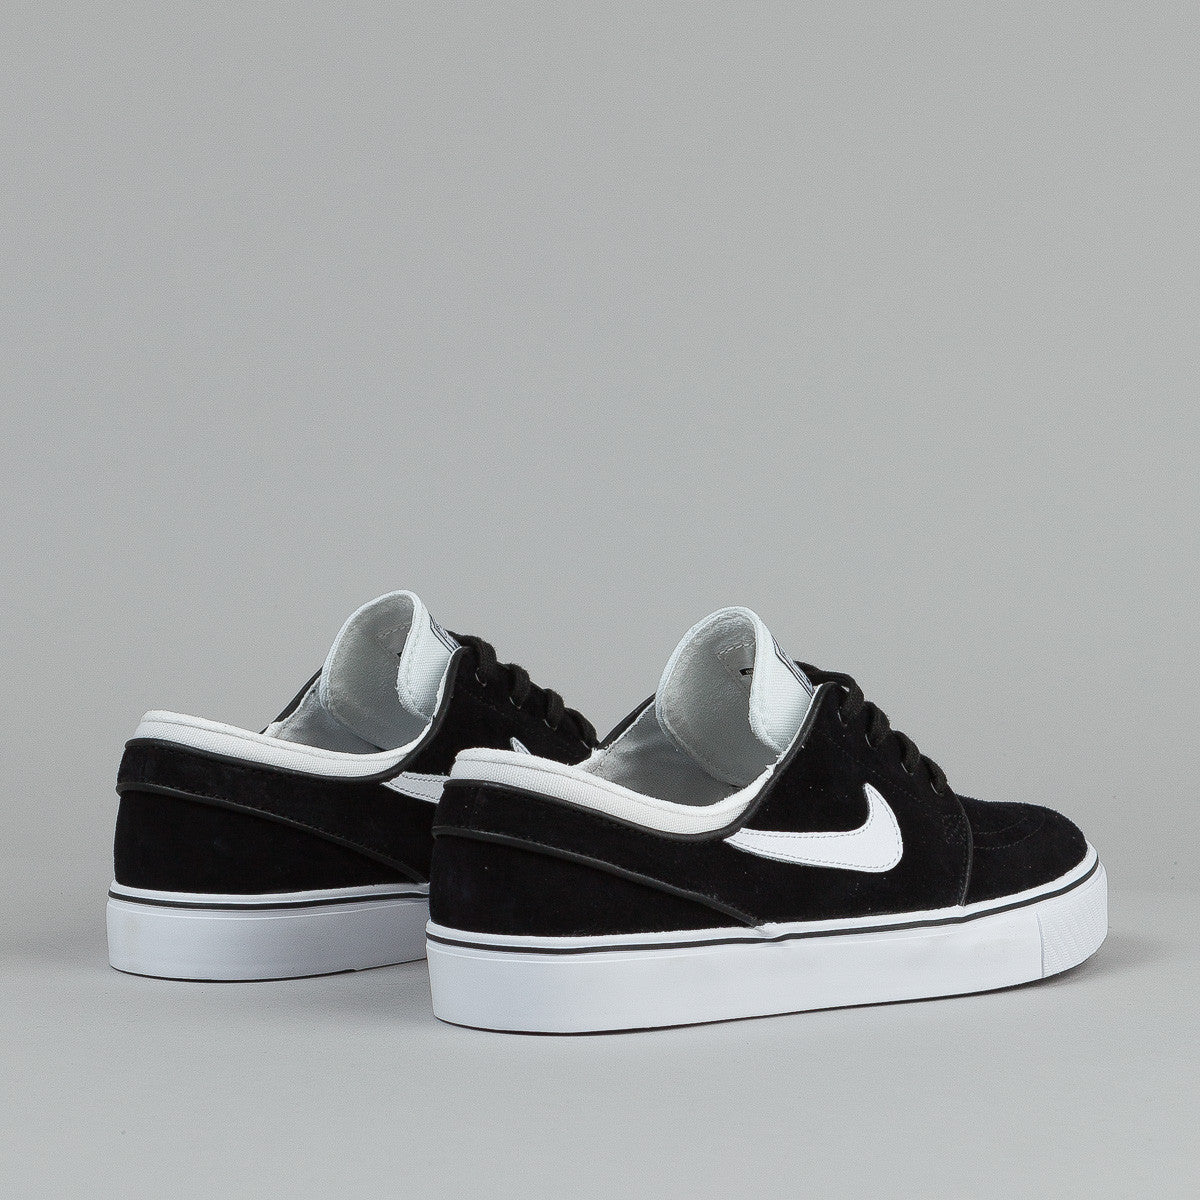 Nike SB Stefan Janoski SE Shoes - Black / White